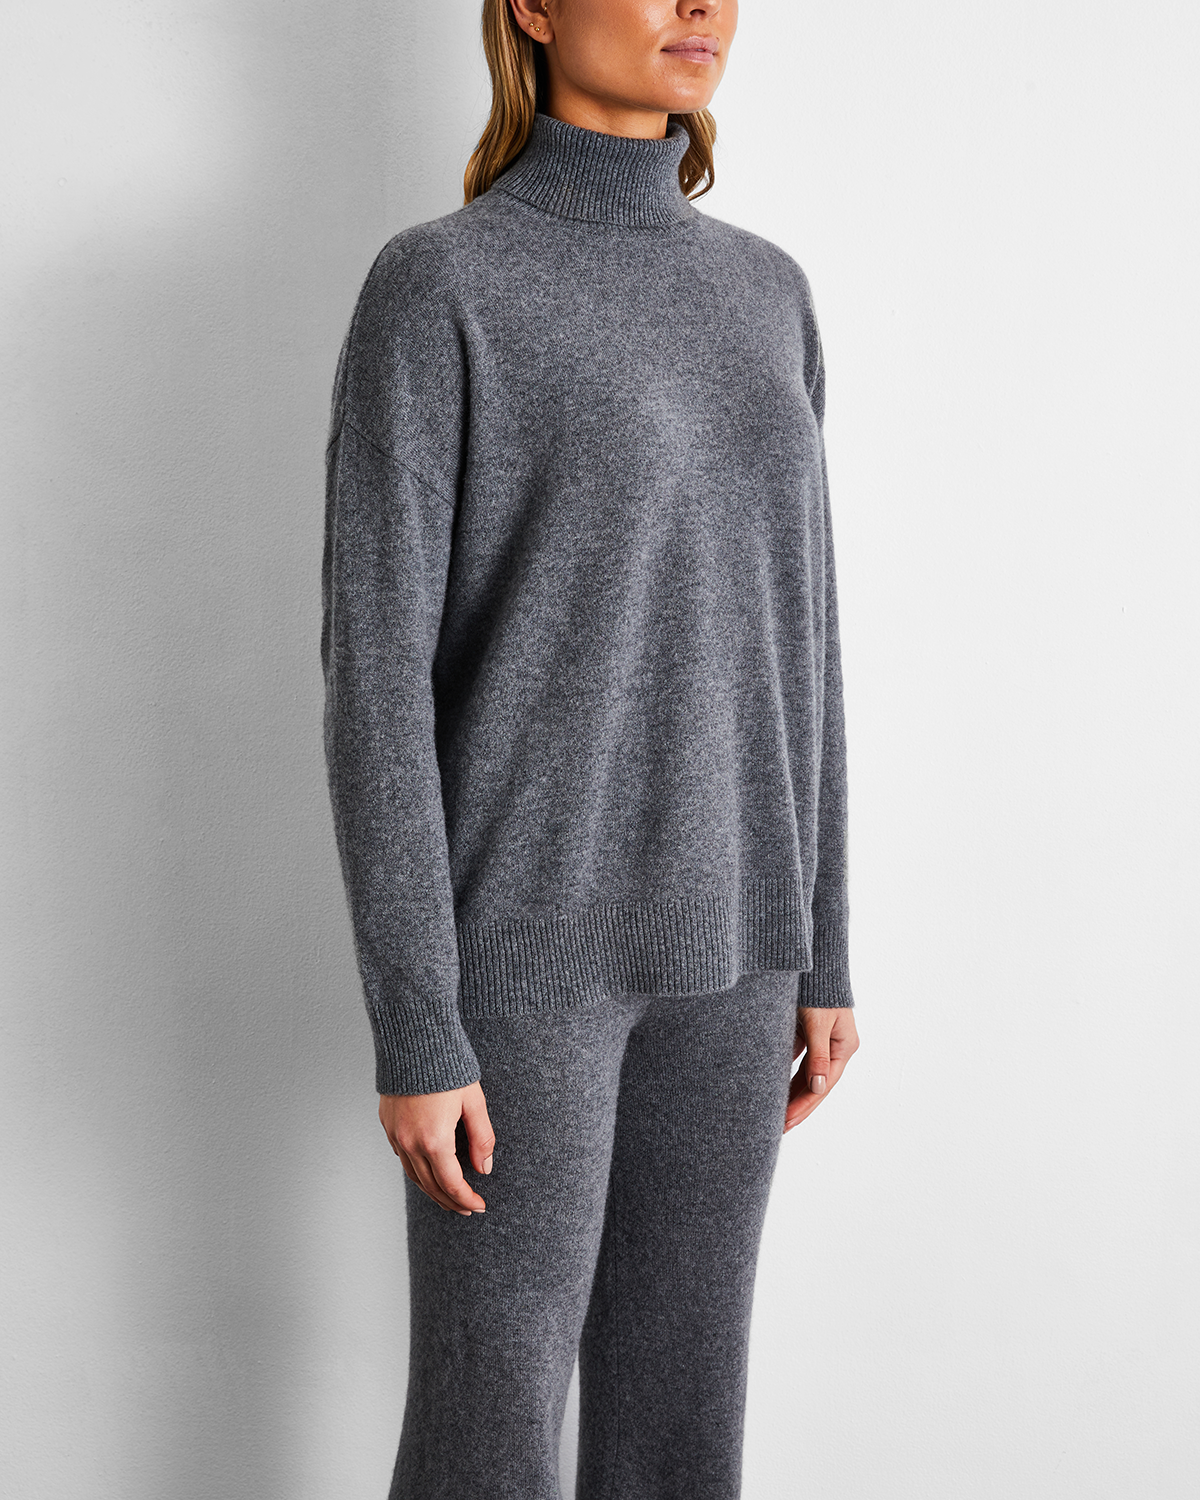 100% Cashmere Sweater in Fog